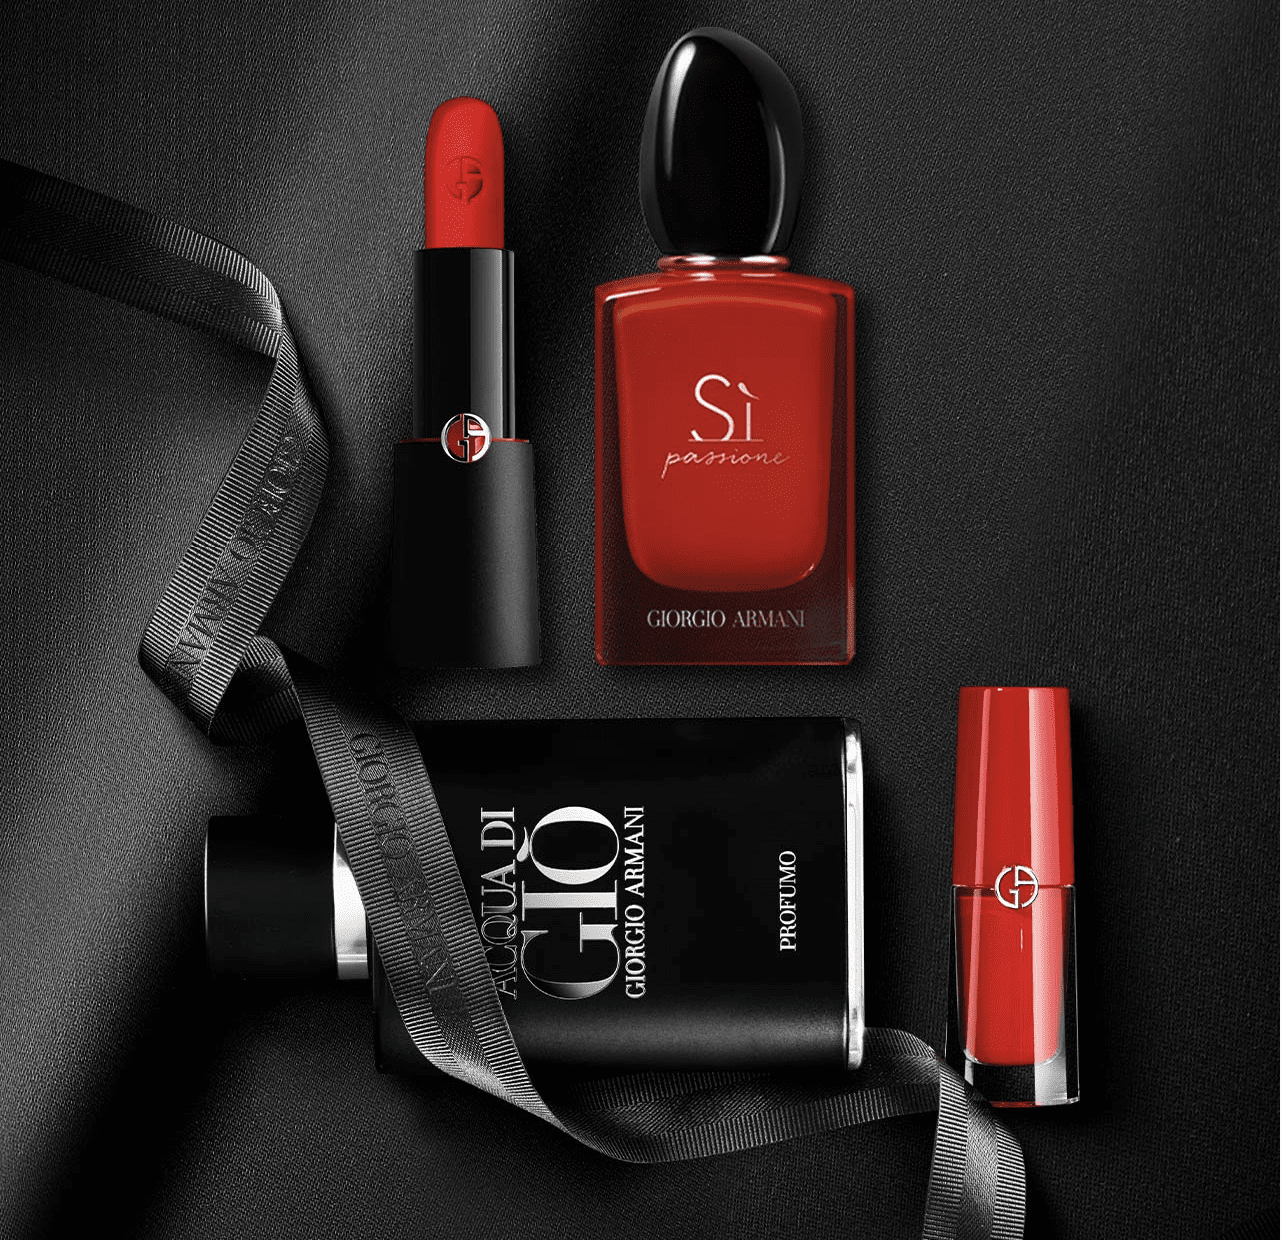 Armani Beauty: 20% off sitewide!